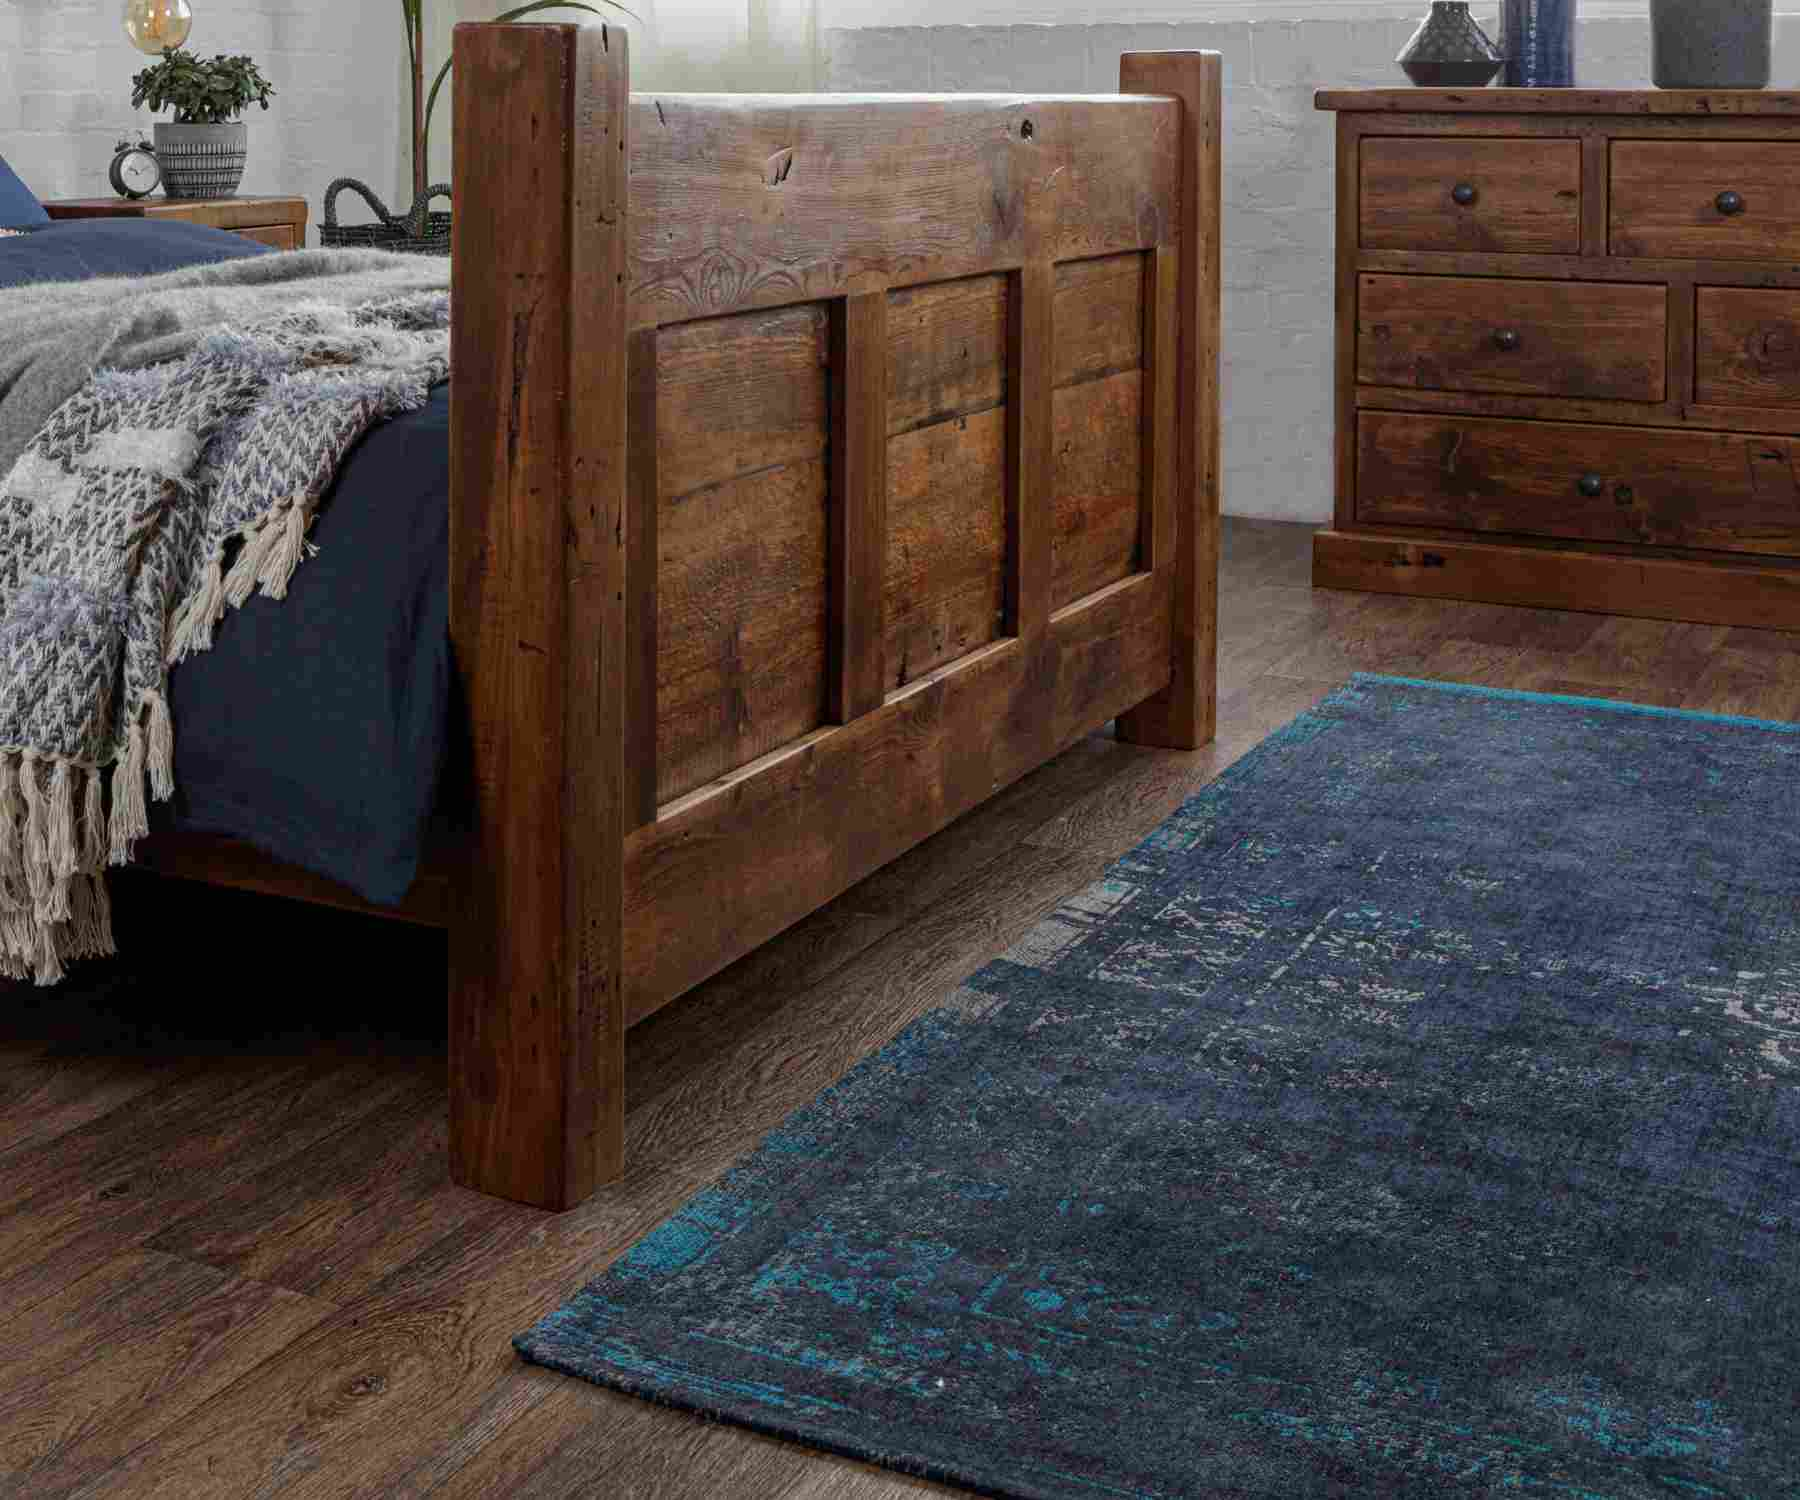 Reclaimed wood bed and blue rug